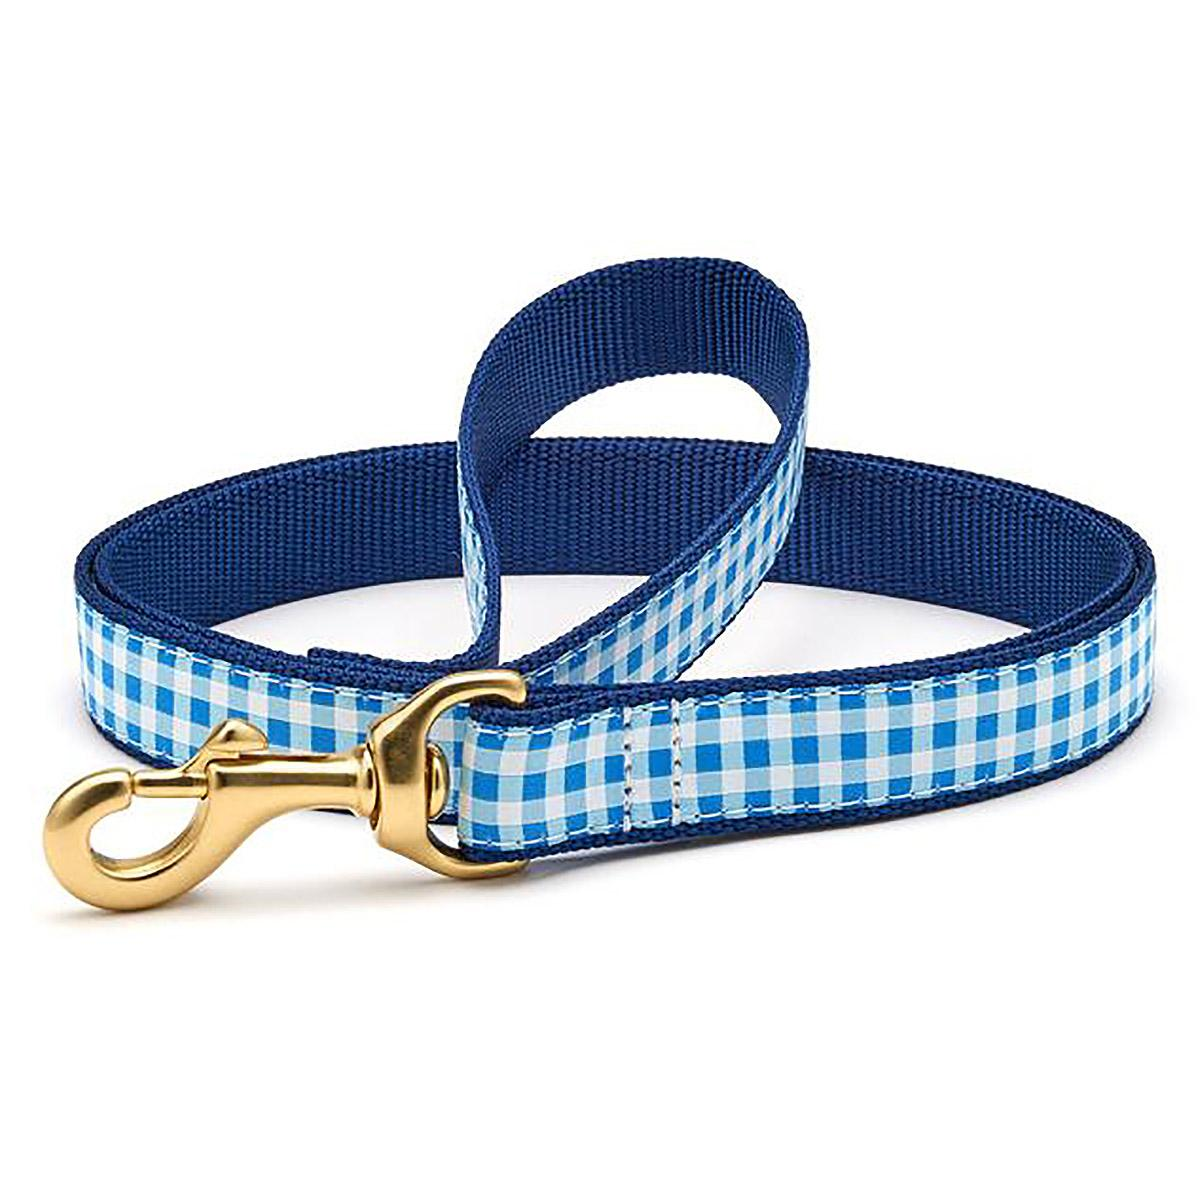 Blue Gingham Dog Leash by Up Country